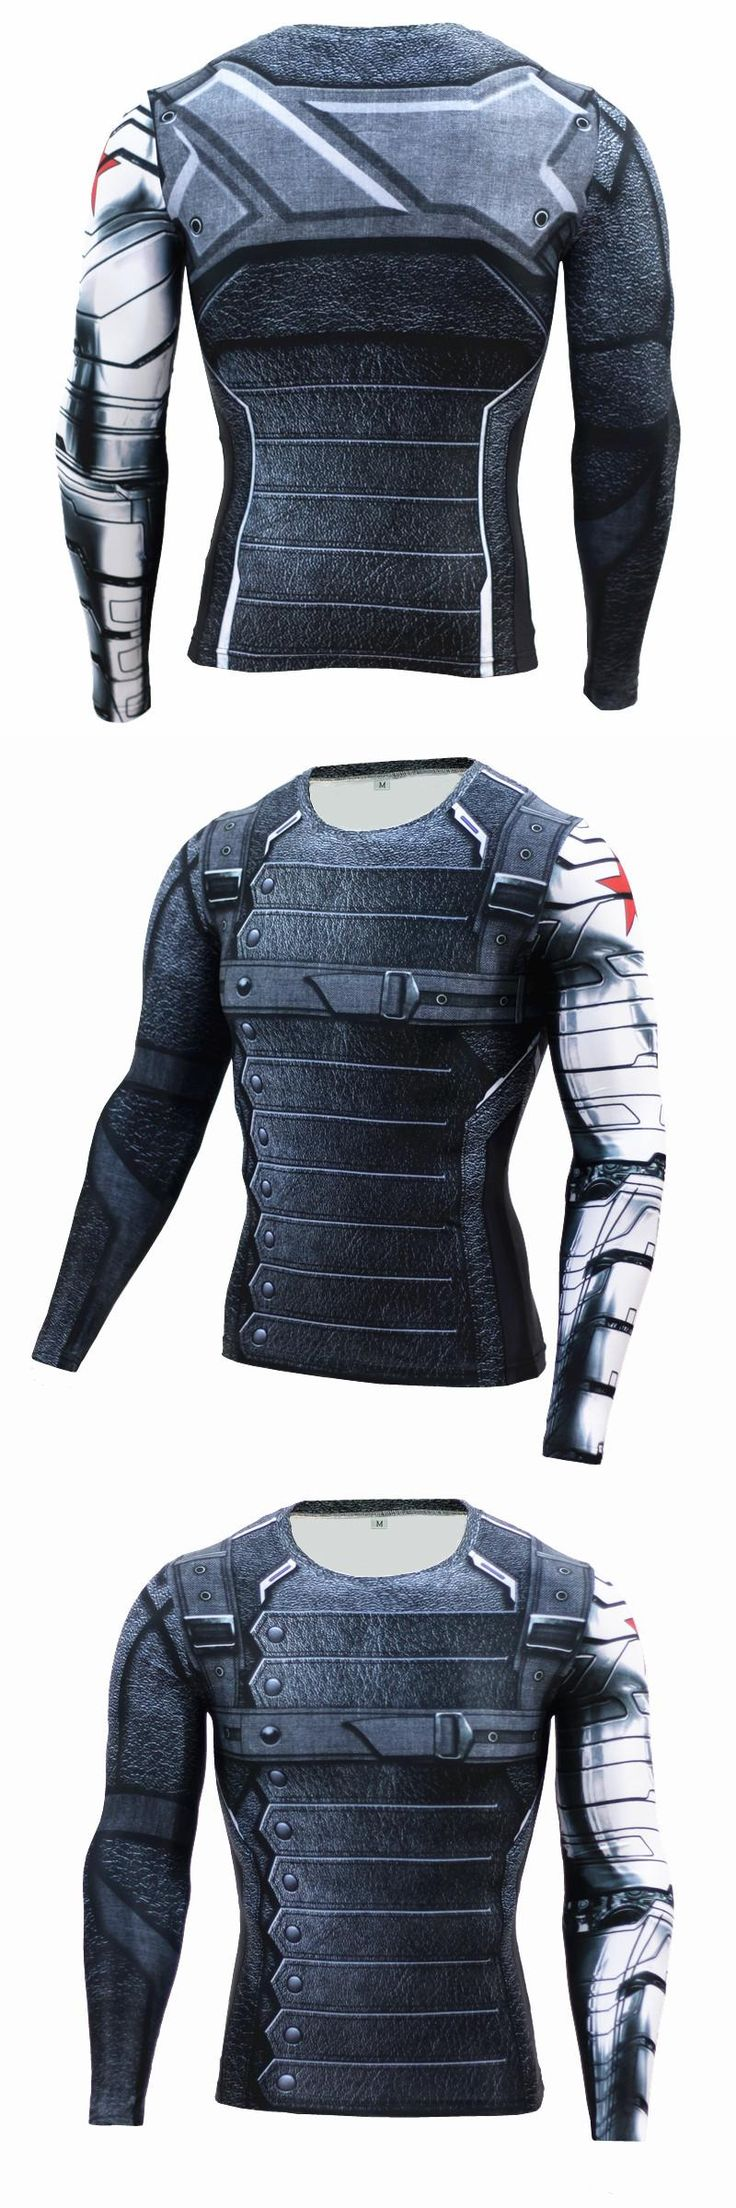 New 2016 Winter 3D Soldier Avengers 3 Fitness Compression Shirt Men Bodybuilding Long Sleeve T Shirt Crossfit Tops Tight Shirts